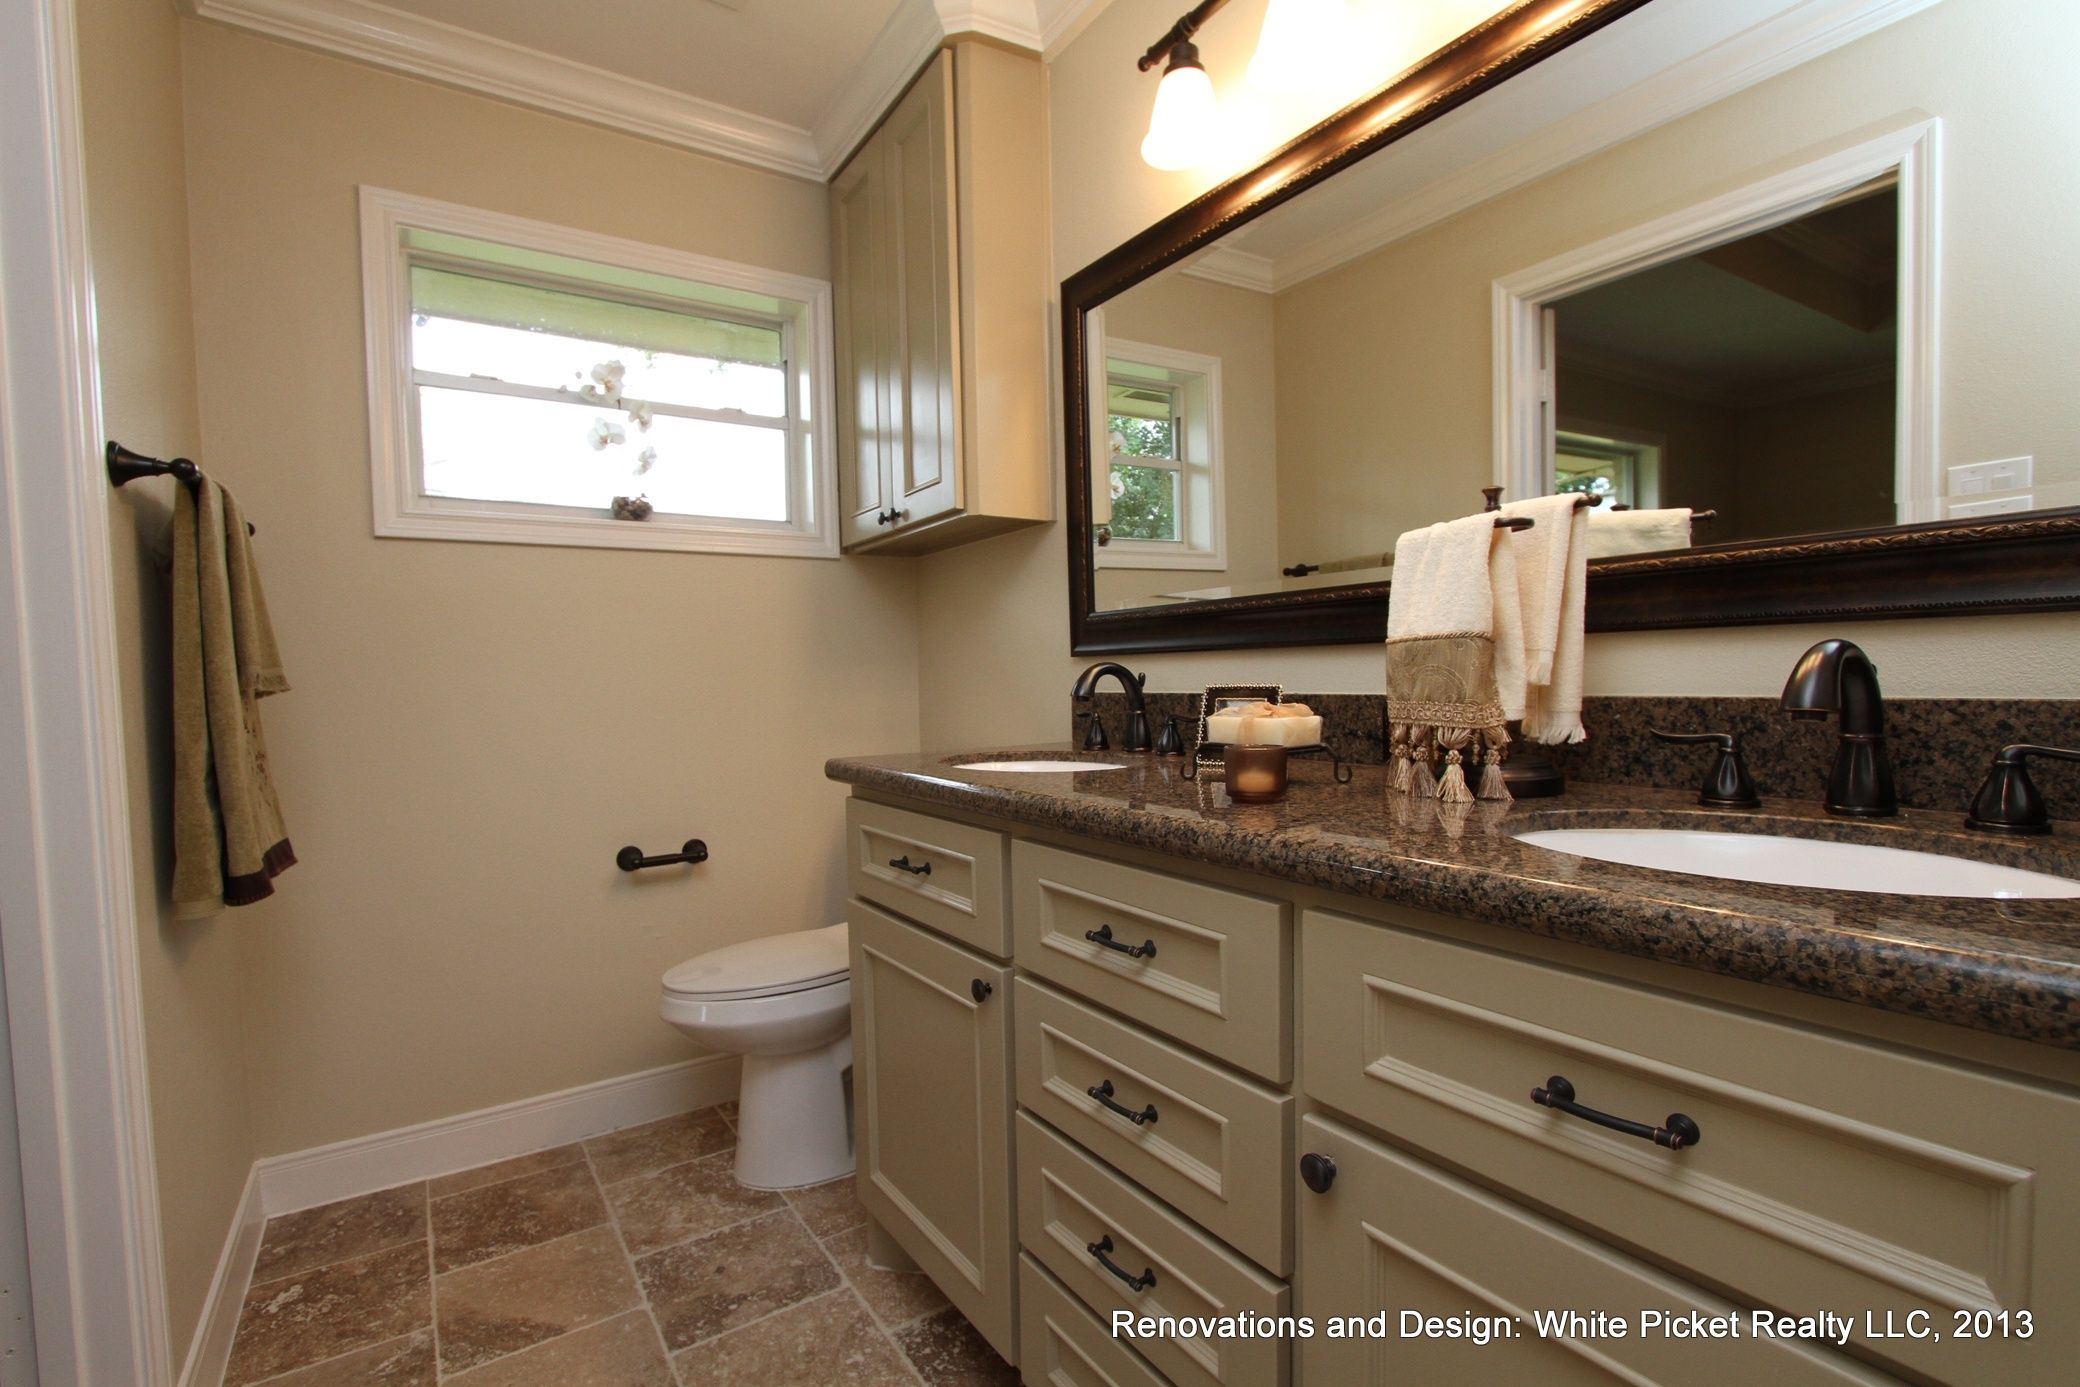 His and Hers bathroom sinks Completed Bathroom Renovations Pinter ...